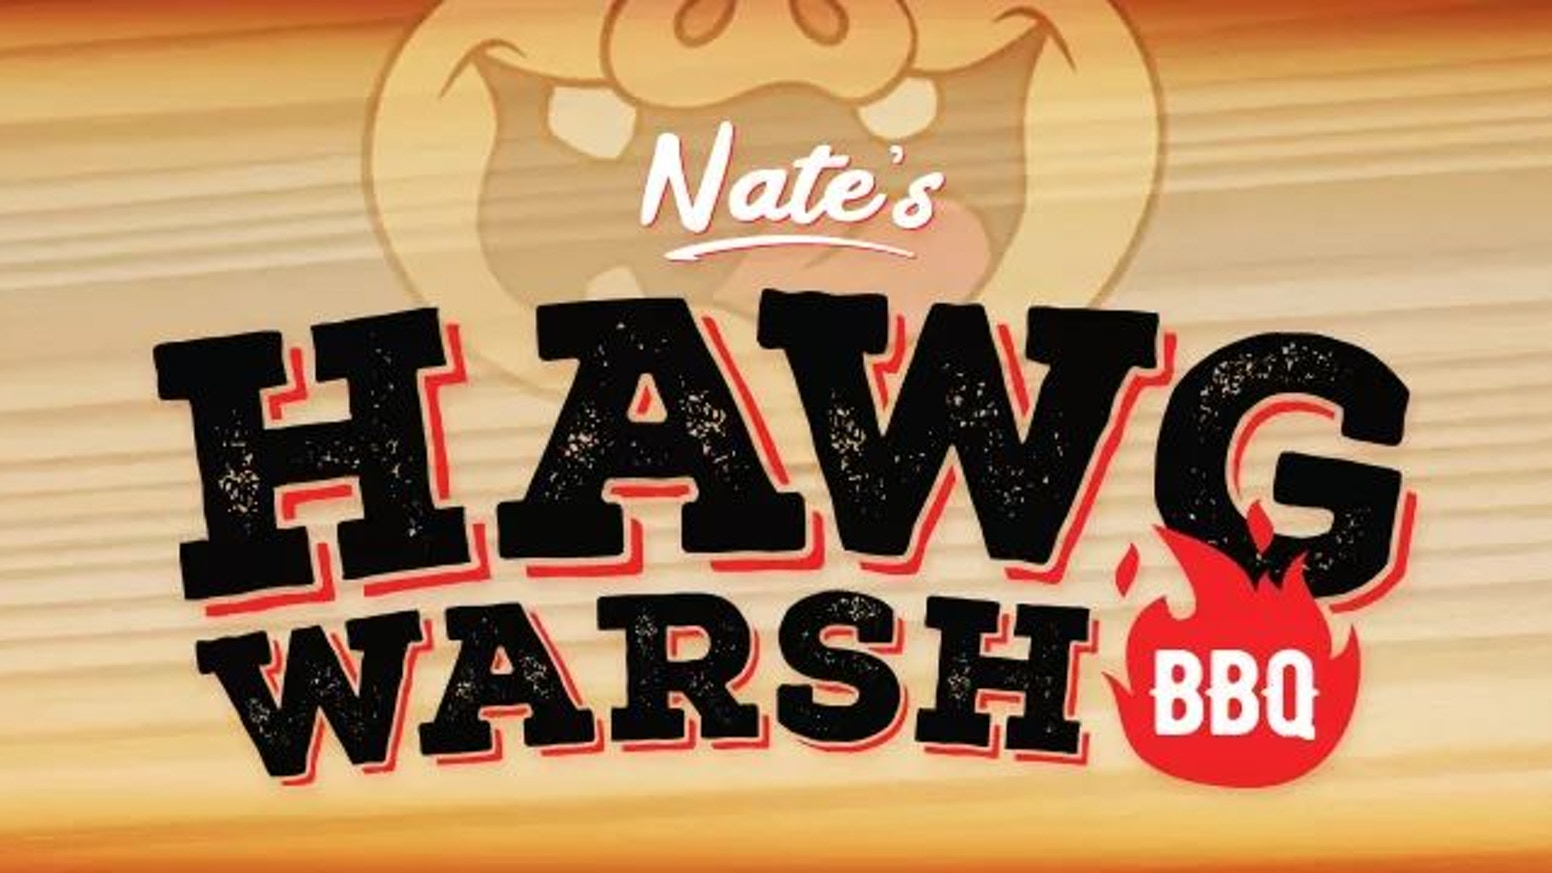 Get Nate's Hawg Warsh bottled! by Nathan & Erica Atwood